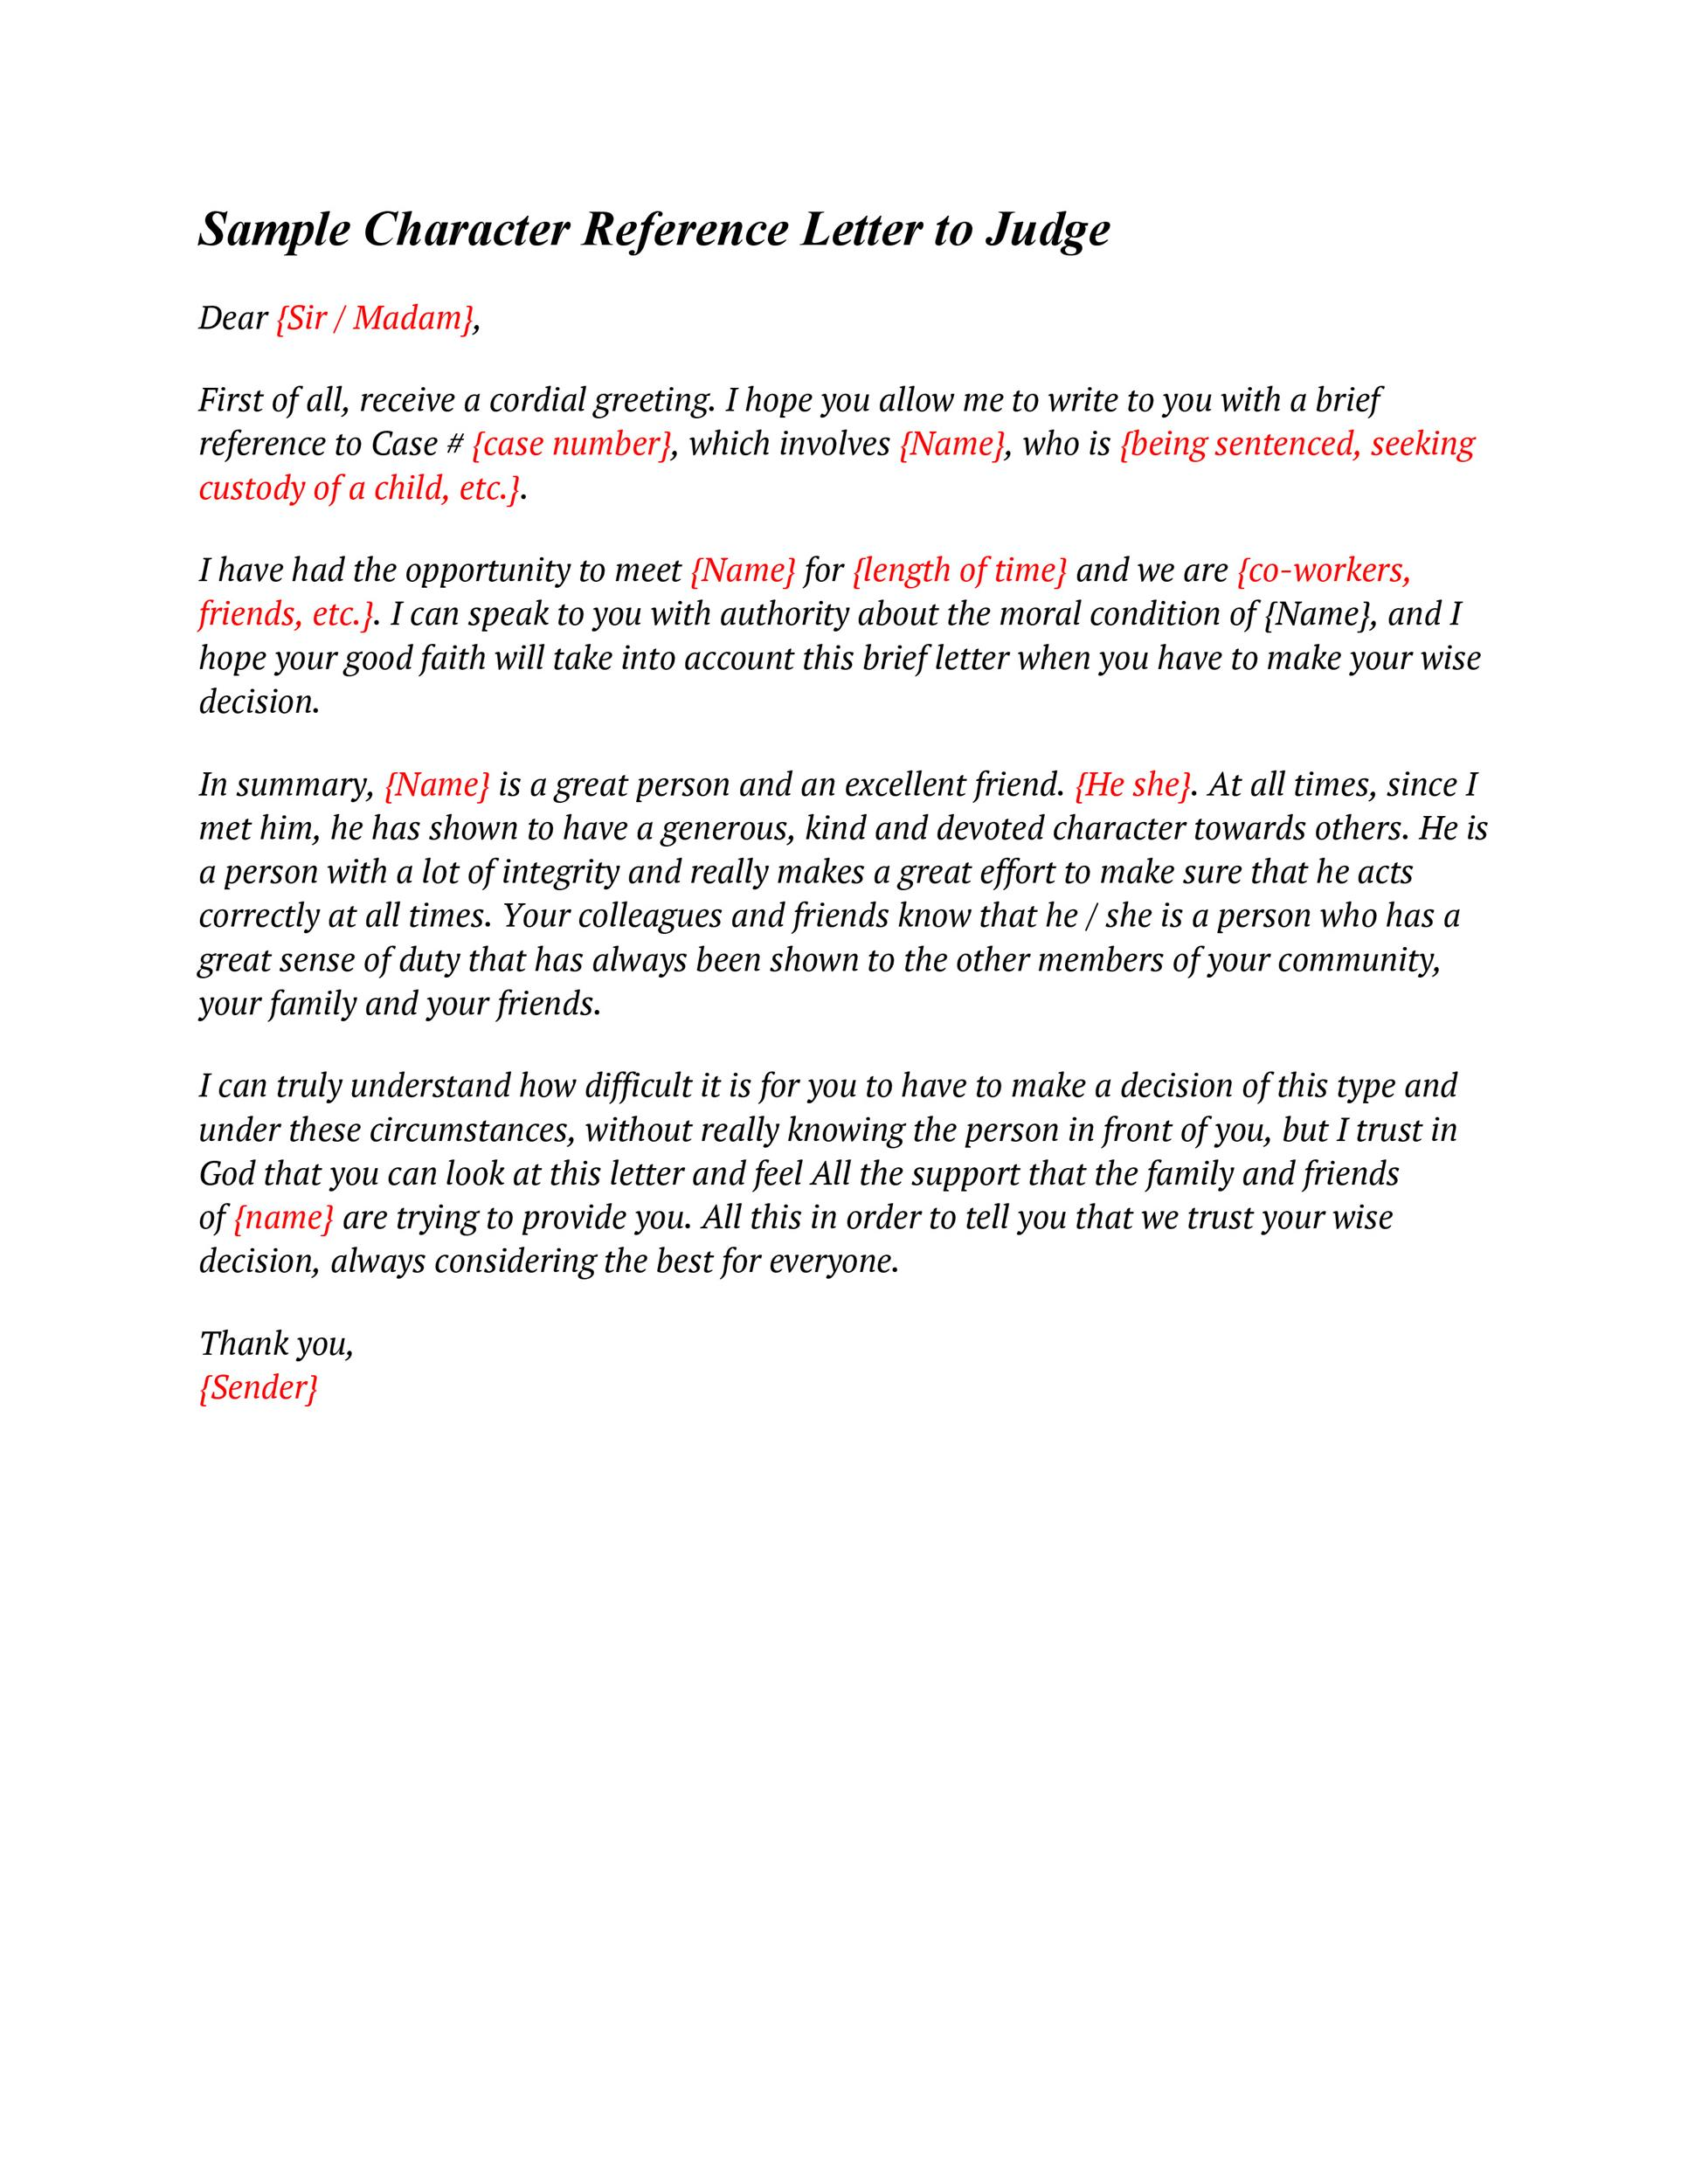 38 free character witness letters  examples   tips   u1405